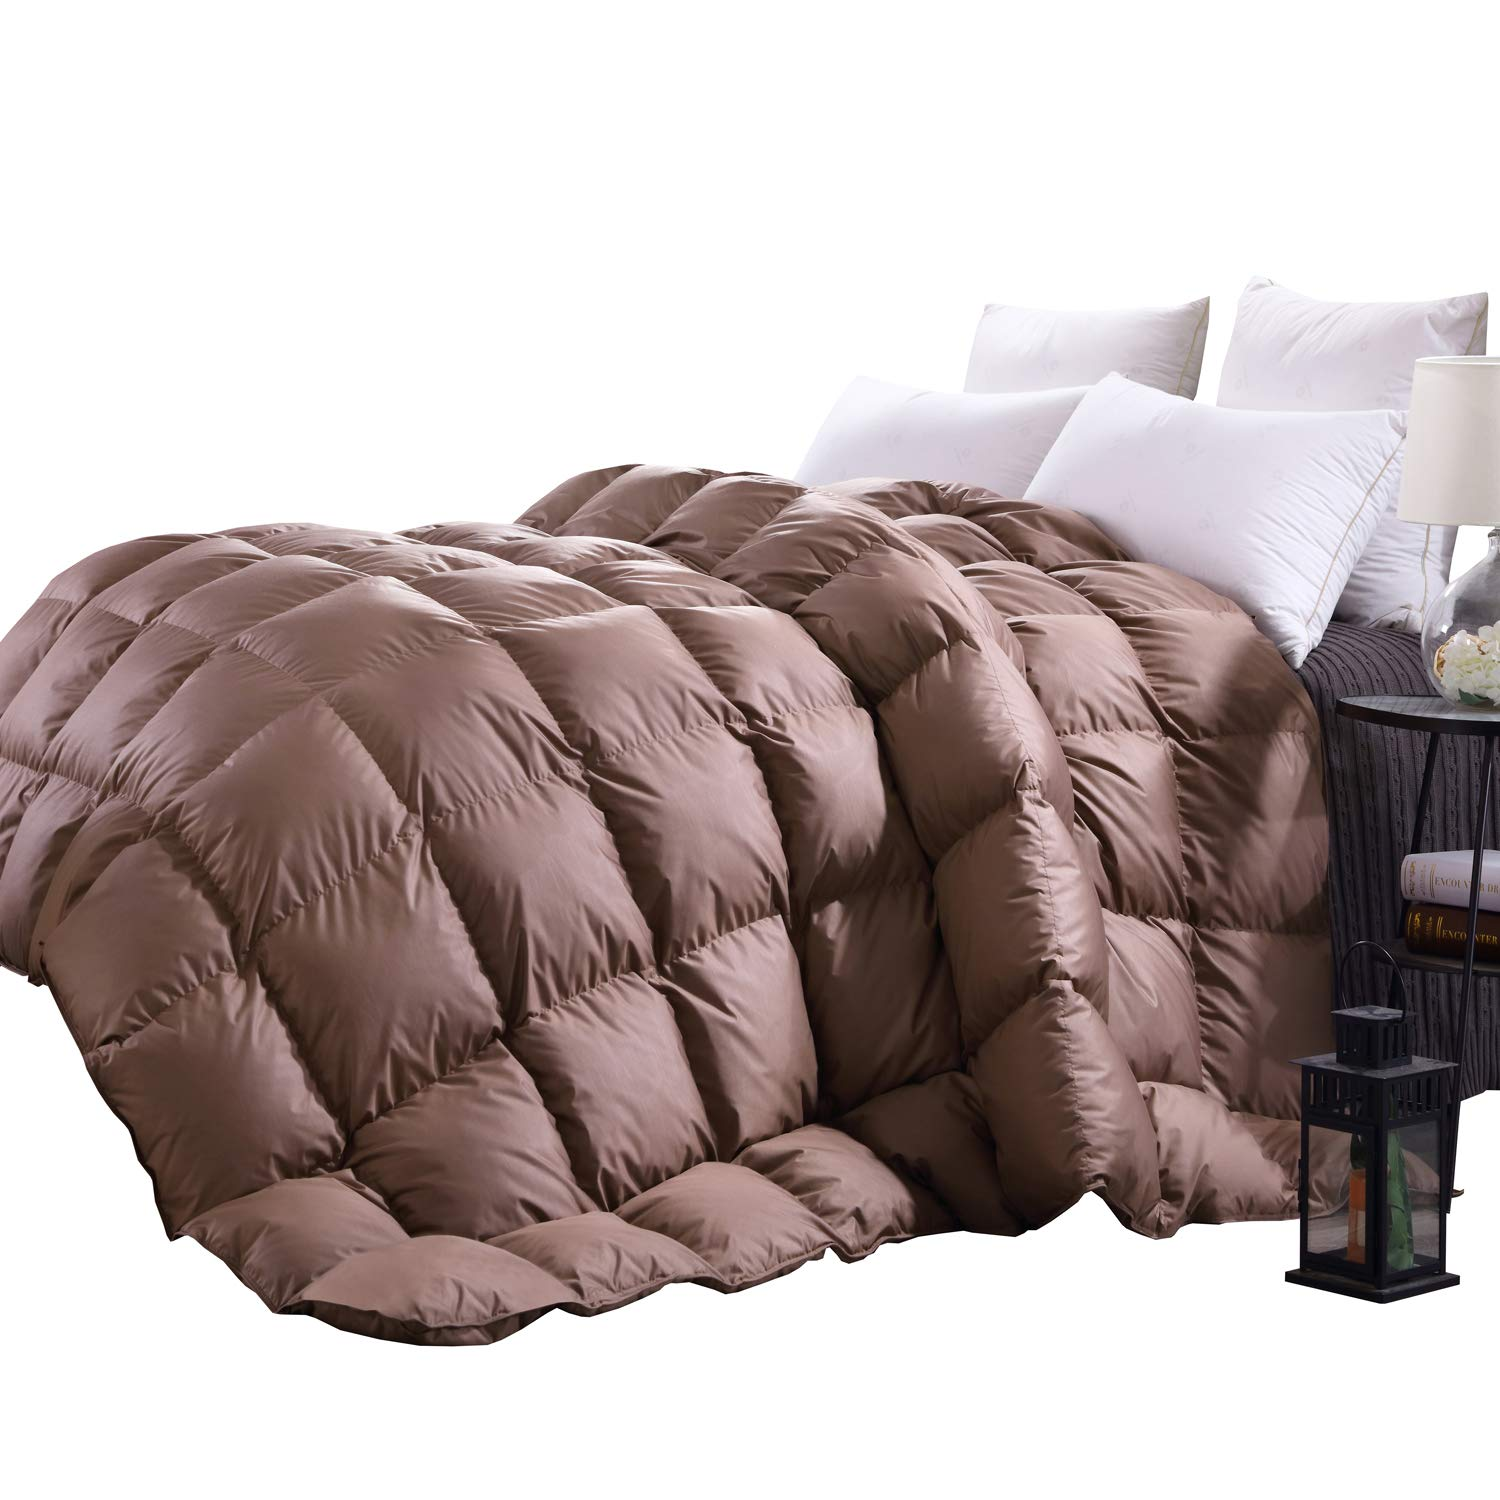 C&W Luxurious Queen Size Siberian Goose Down Comforter,Heavywarmth Winter,Down Comforter Queen Size,1200 TC-100% Egyptian Cotton Cover,750 Fill Power,60 oz Fill Weight, Brown Solid BNTC C&W Duvet04